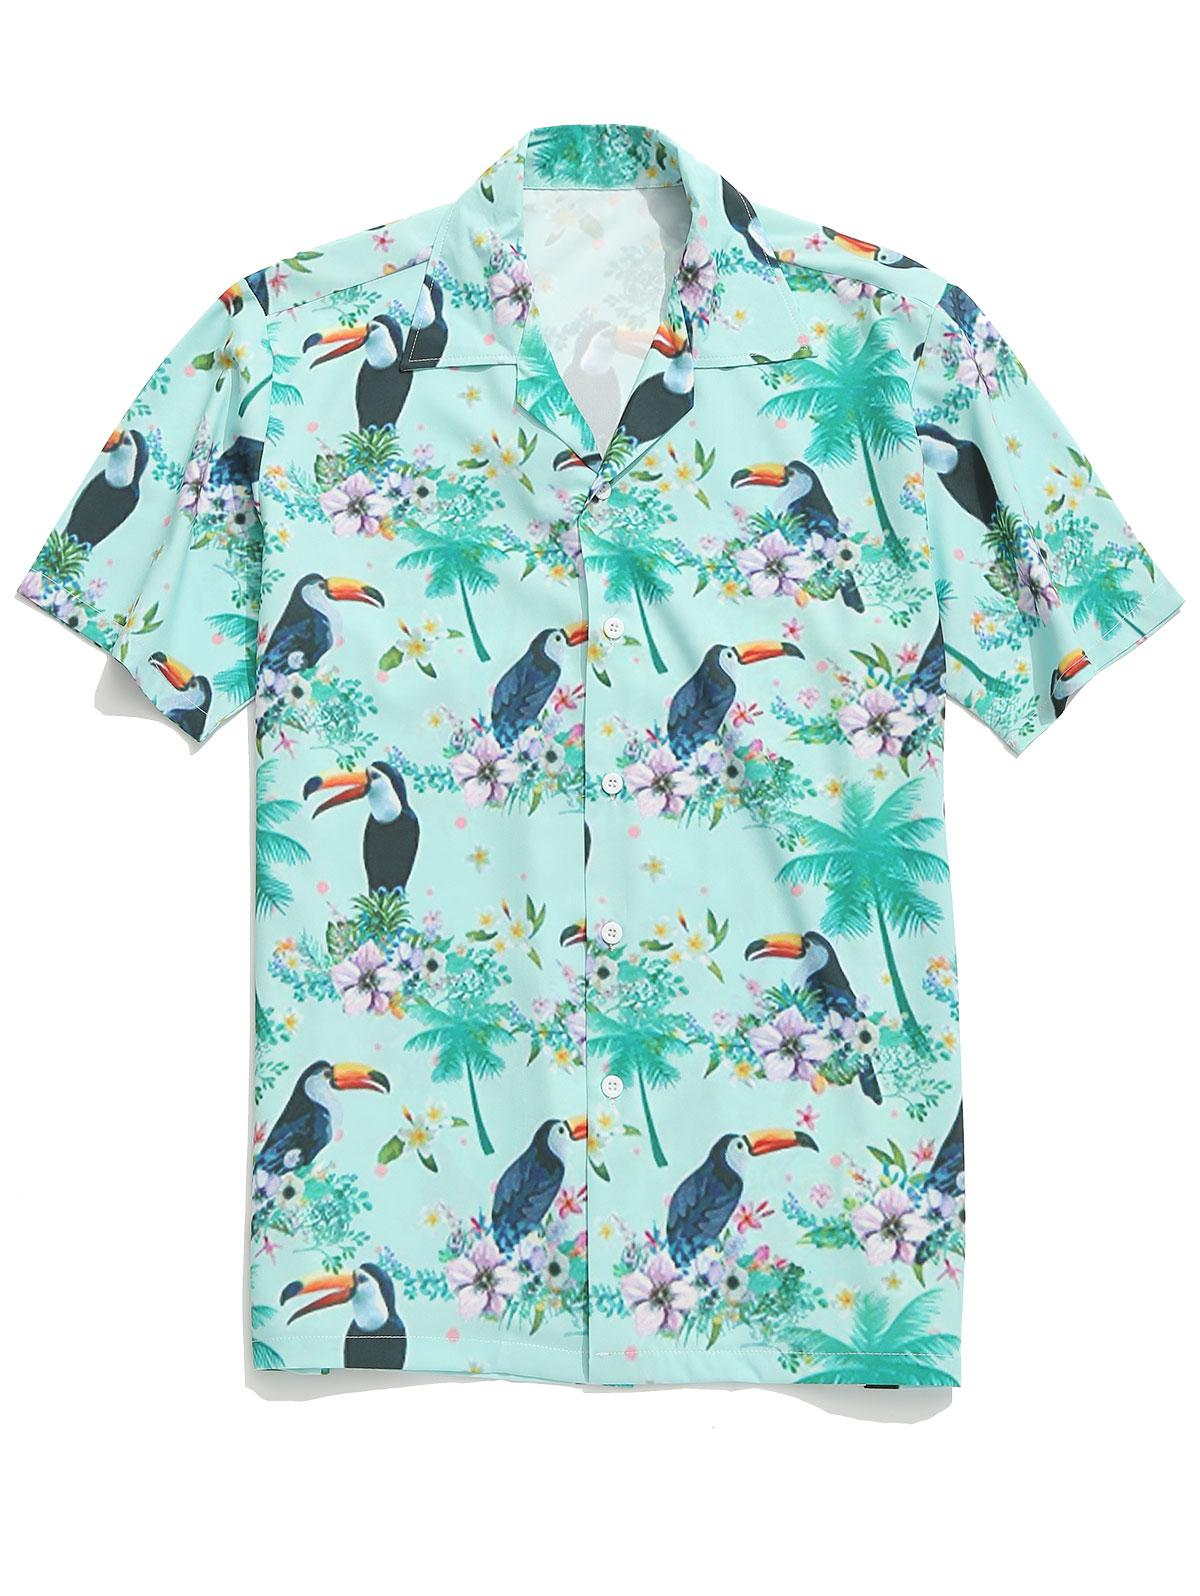 Toucan Flowers Plant Print Beach Shirt, Multi